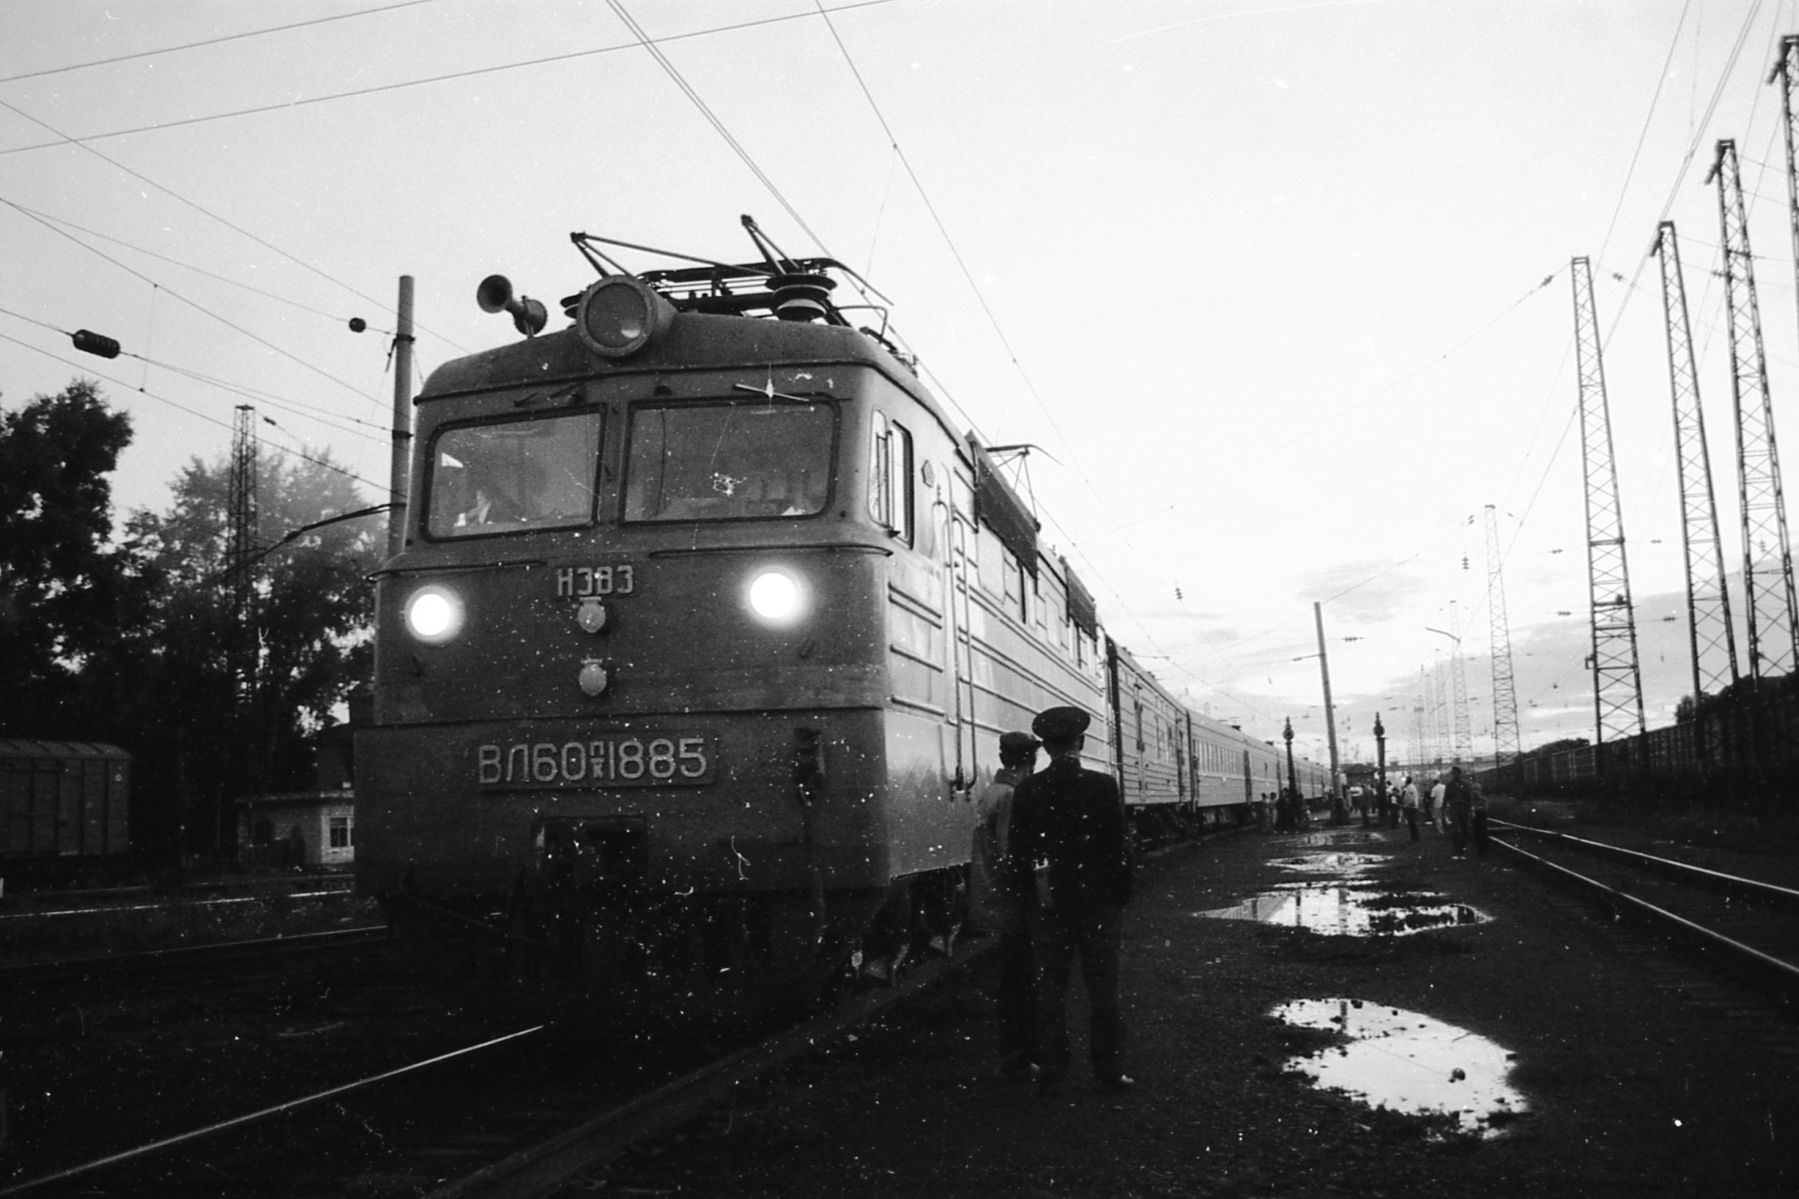 The Trans-Siberian Railway. Image in the public domain.